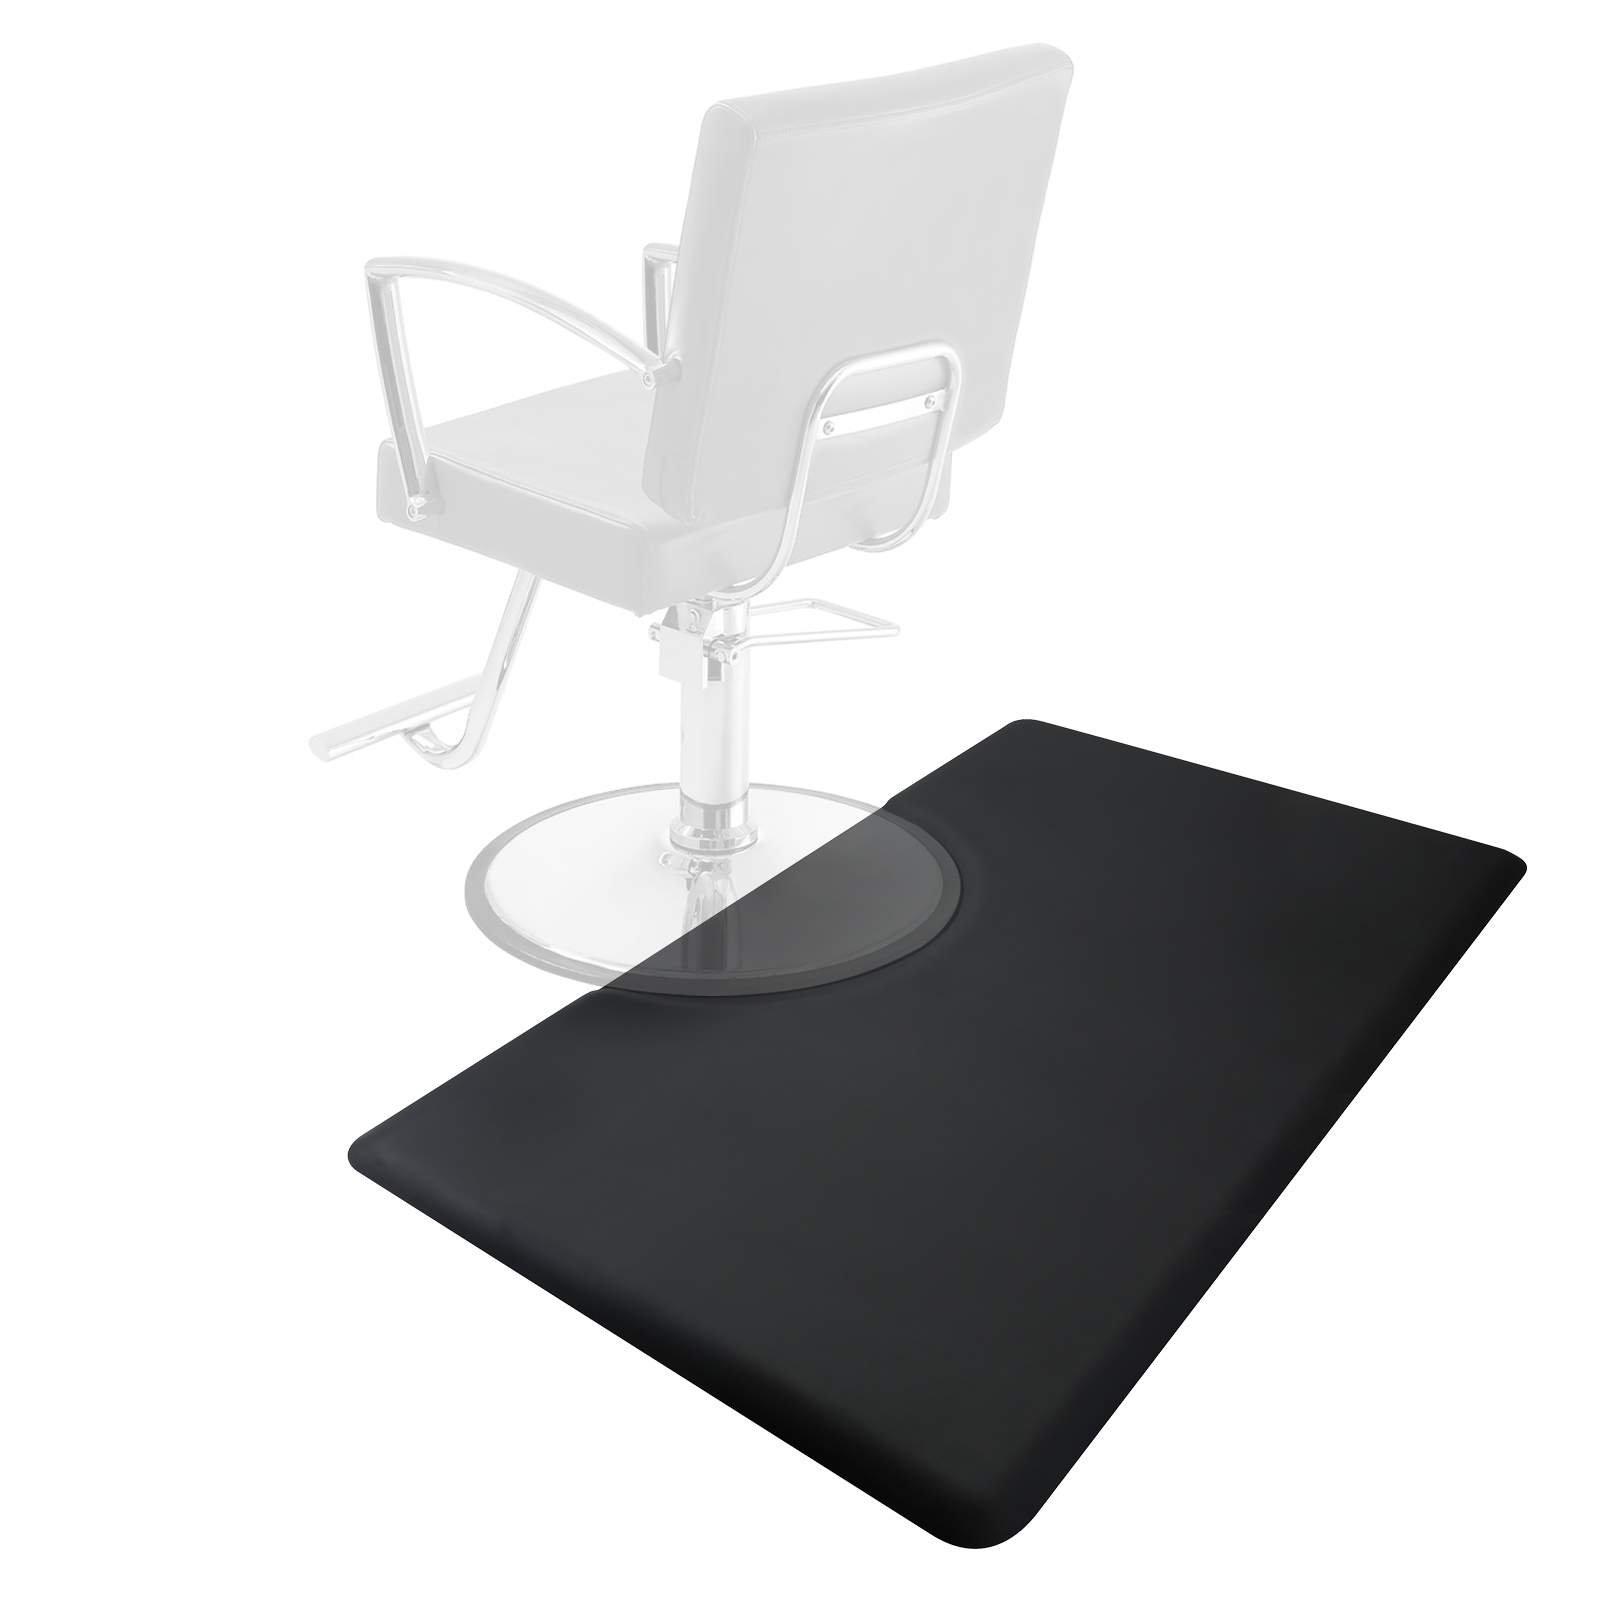 Saloniture 3 ft. x 5 ft. Salon & Barber Shop Chair Anti-Fatigue Floor Mat - Black Rectangle - 7/8 in. Thick